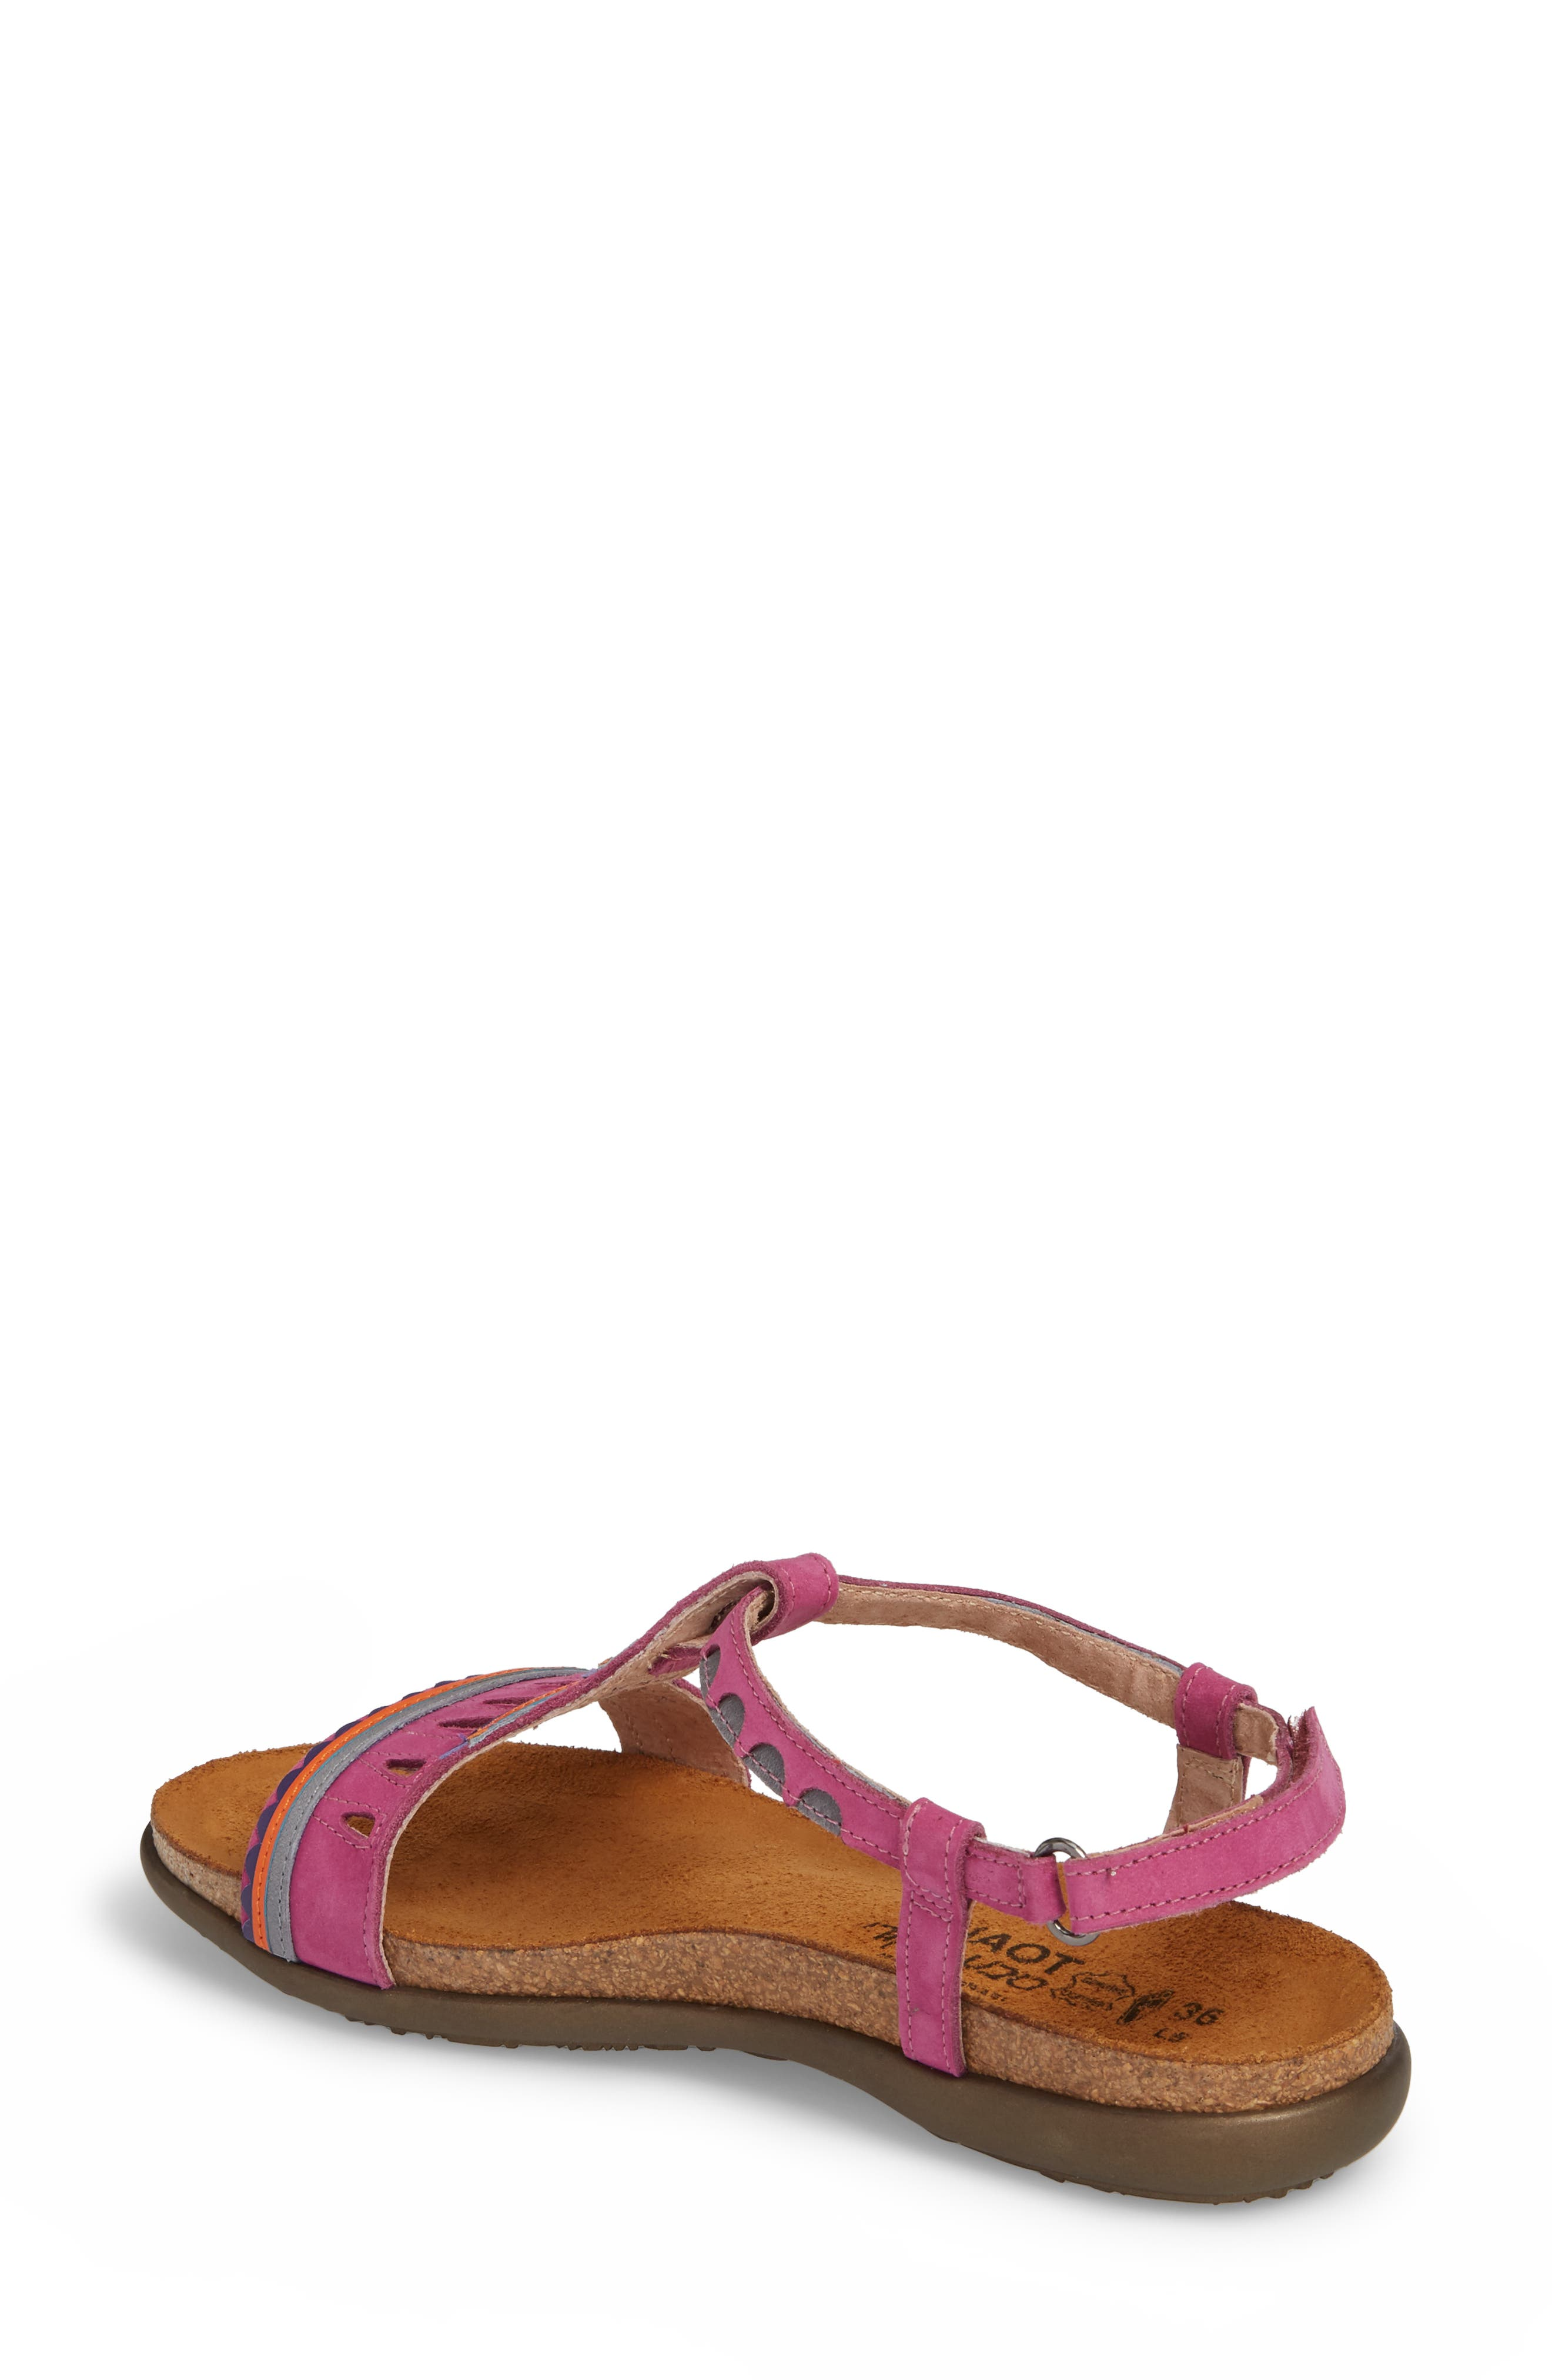 Alternate Image 2  - Naot Odelia Perforated T-Strap Sandal (Women)